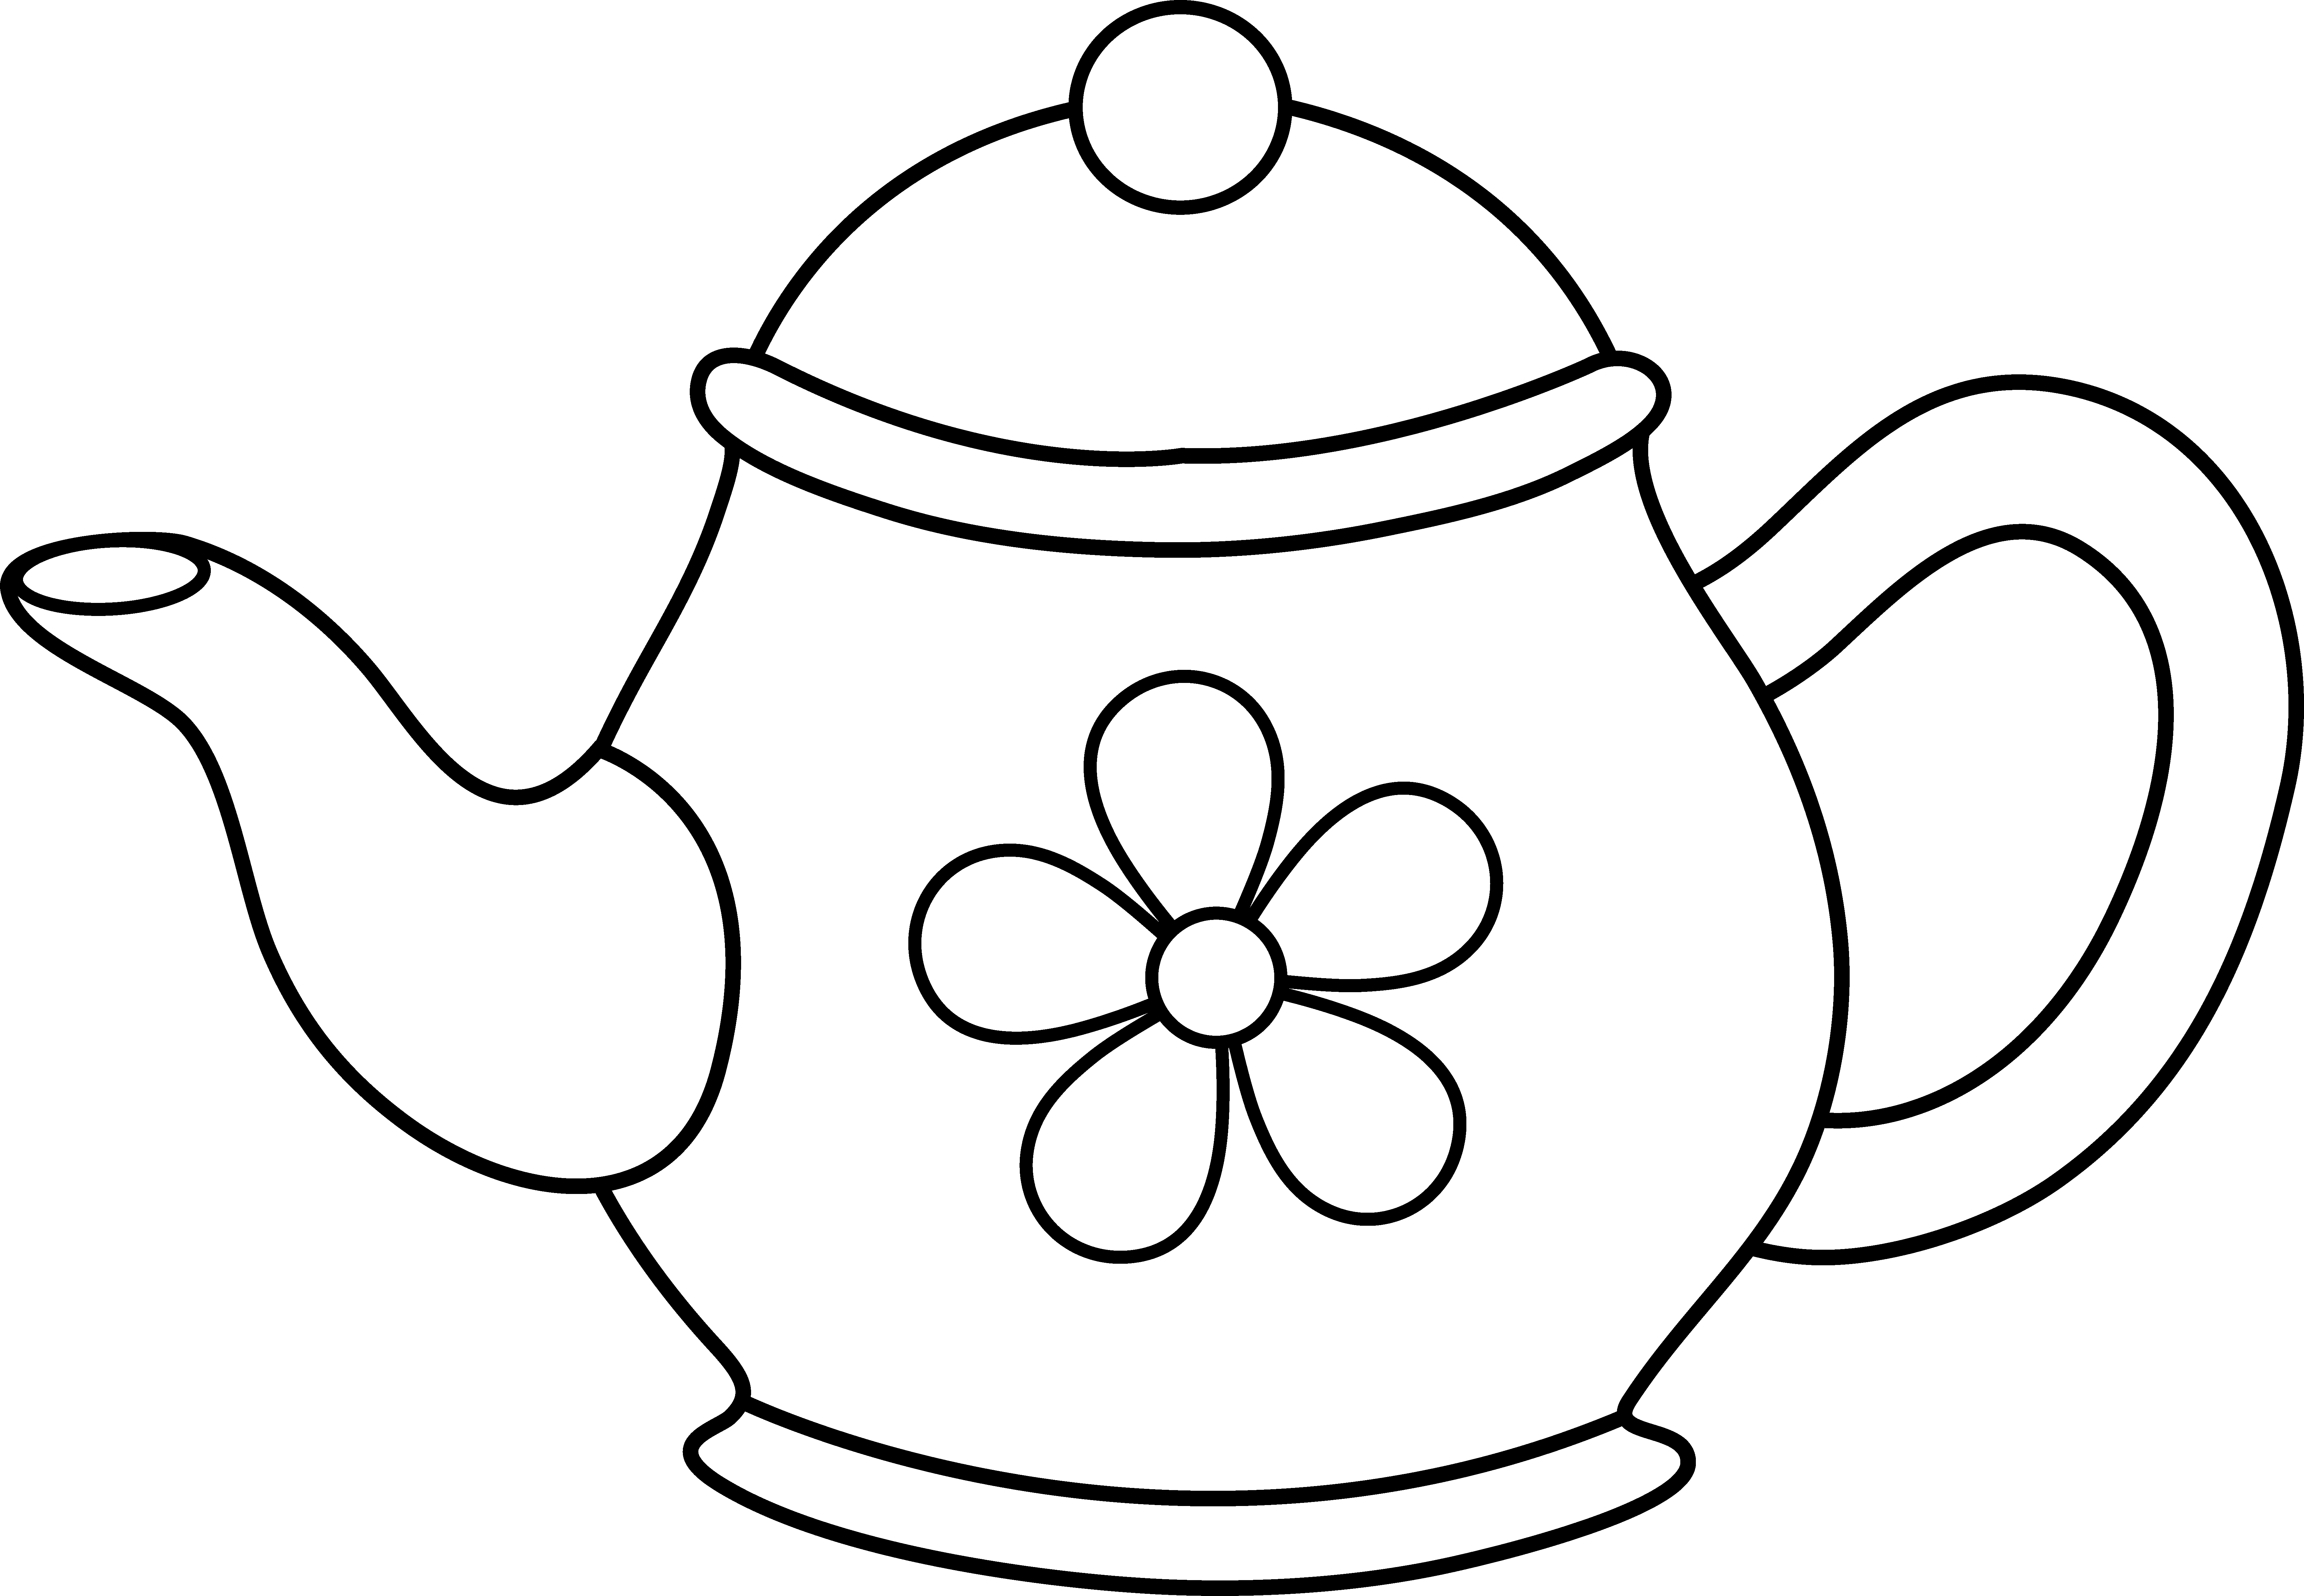 pictures of teapots to colour pin by hoffa design on vector art cartoon designs heart colour teapots of to pictures